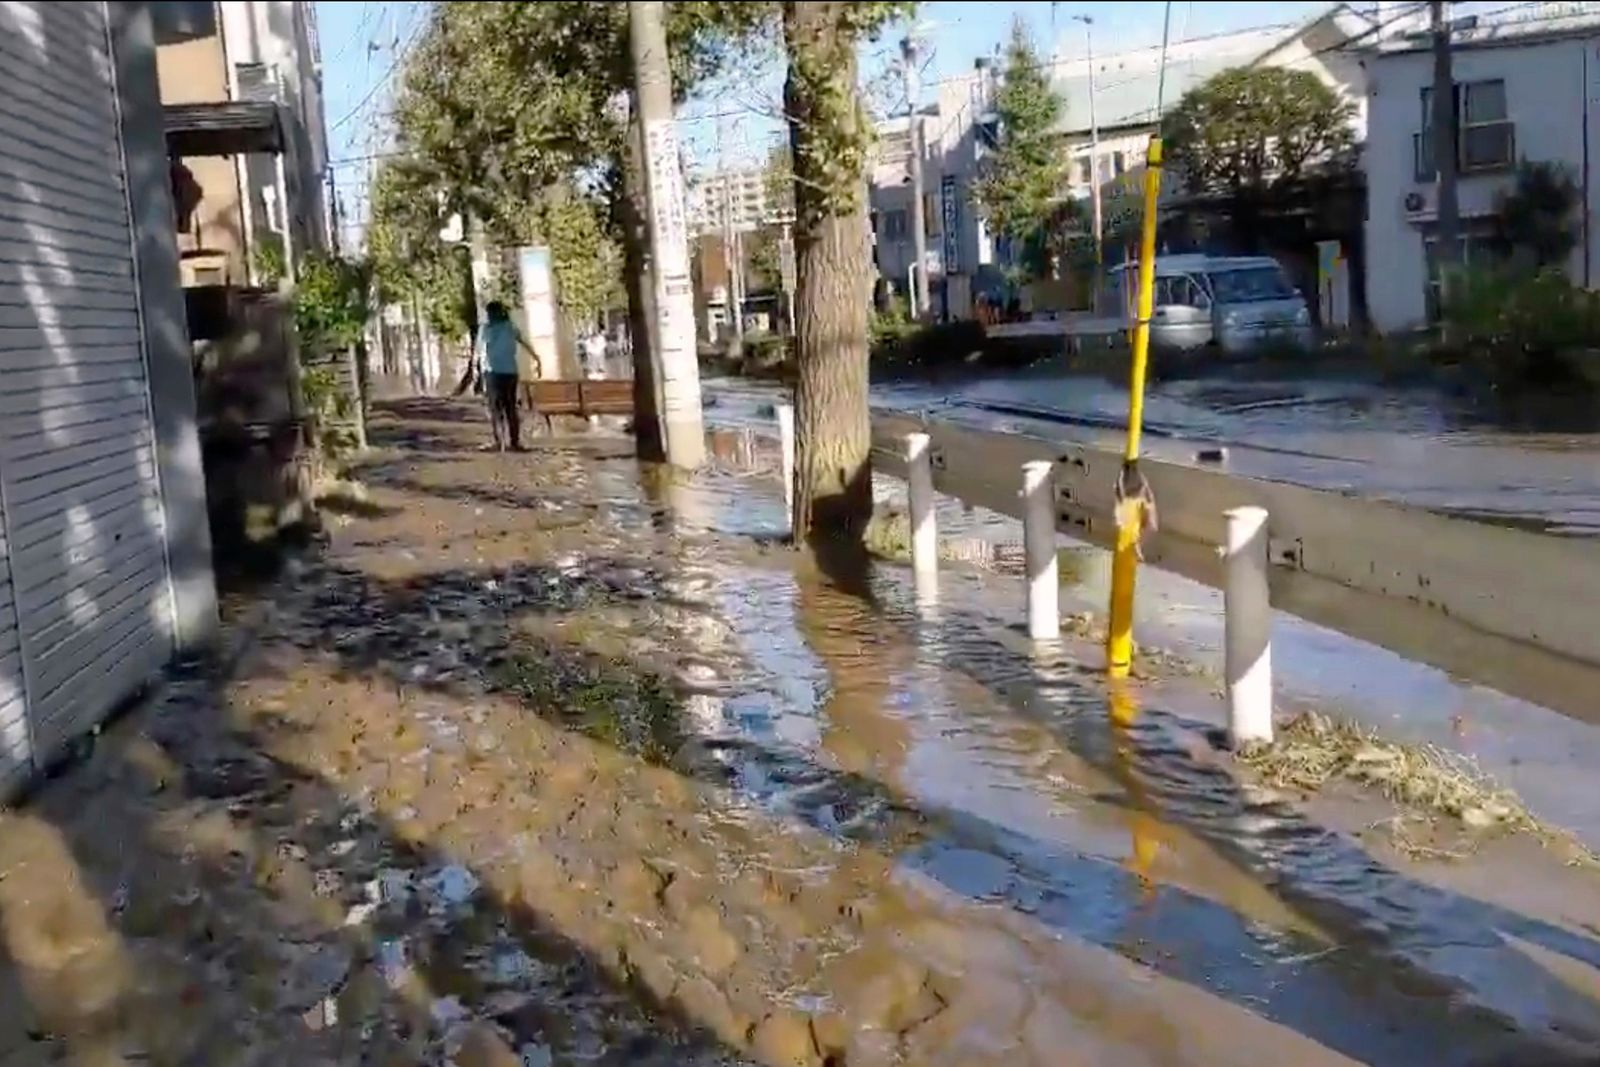 This image made from a video by @ar_kaz shows the mud covered street after the flood water receded on the morning Sunday, Oct. 13, 2019, in Kawasaki, near Tokyo, Japan. (@ar_kaz via AP)